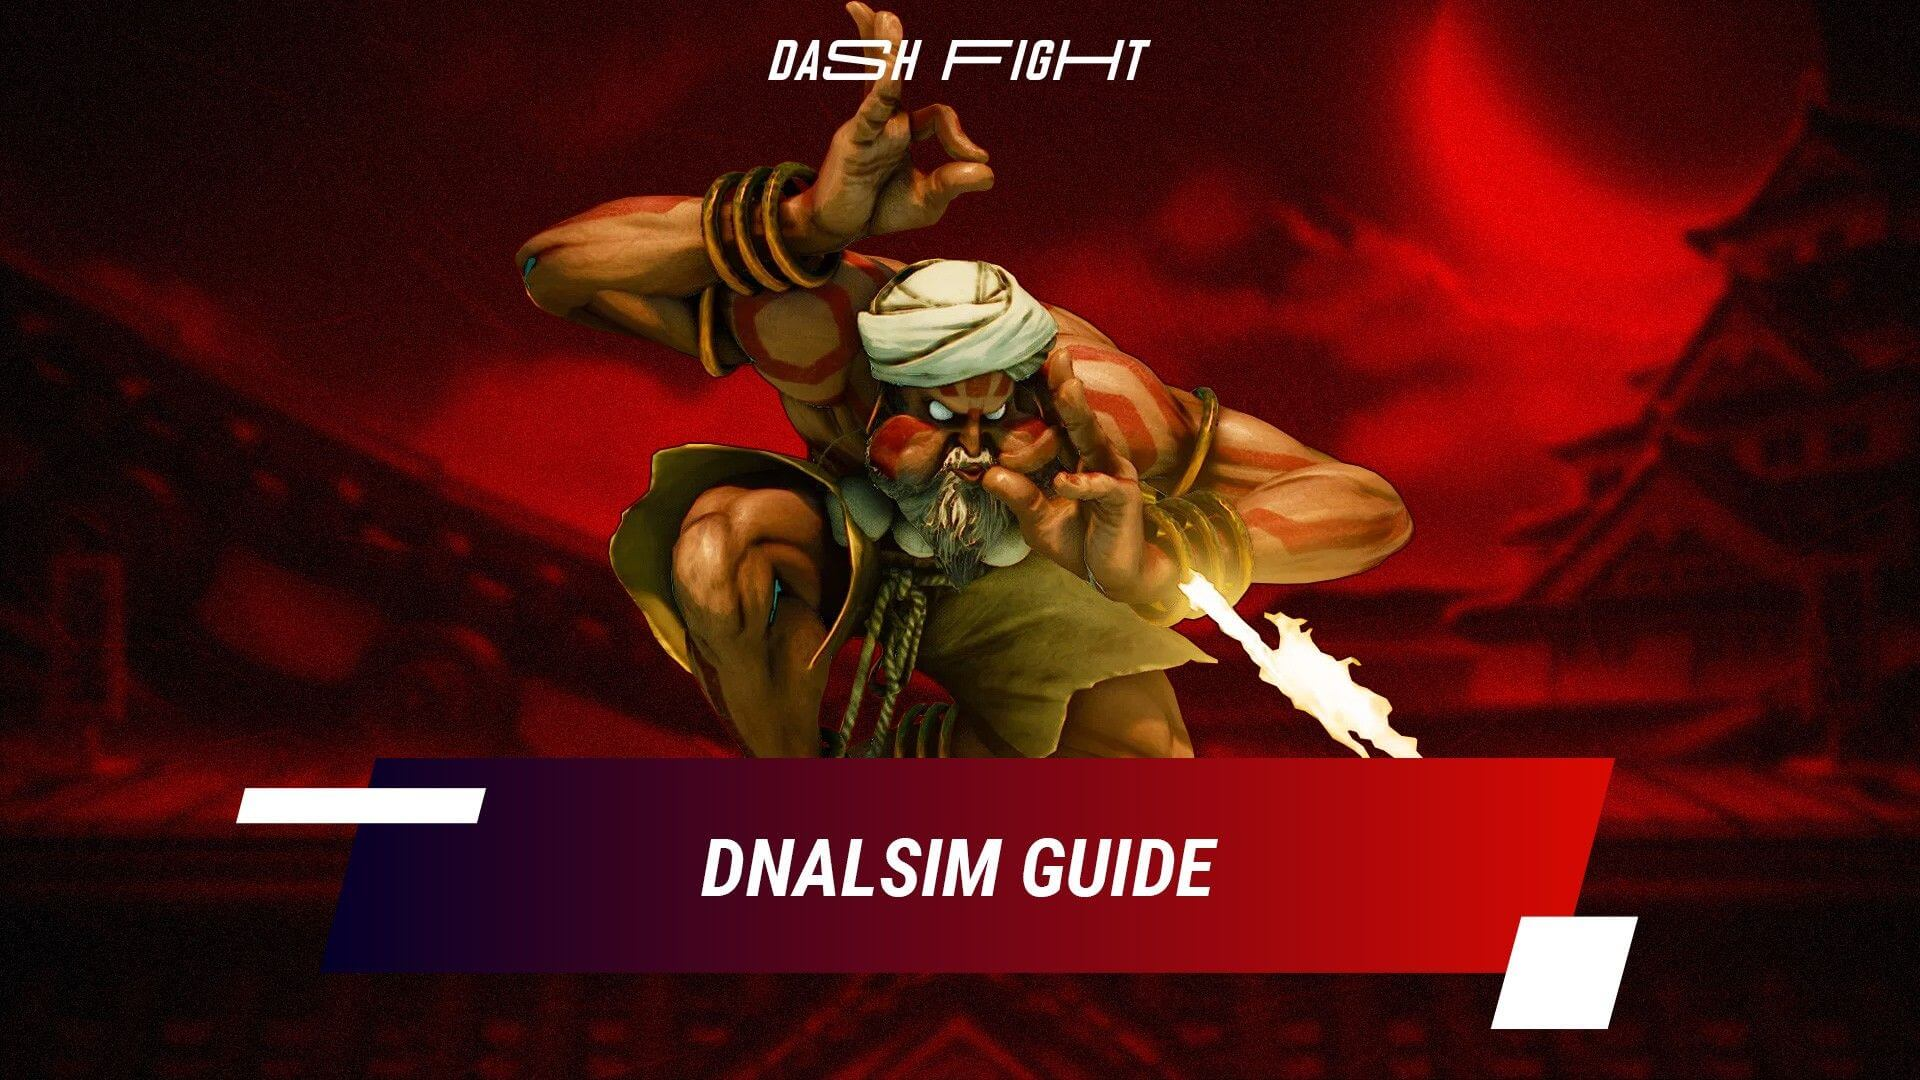 Street Fighter 5: Dhalsim Guide - Combos and Move List